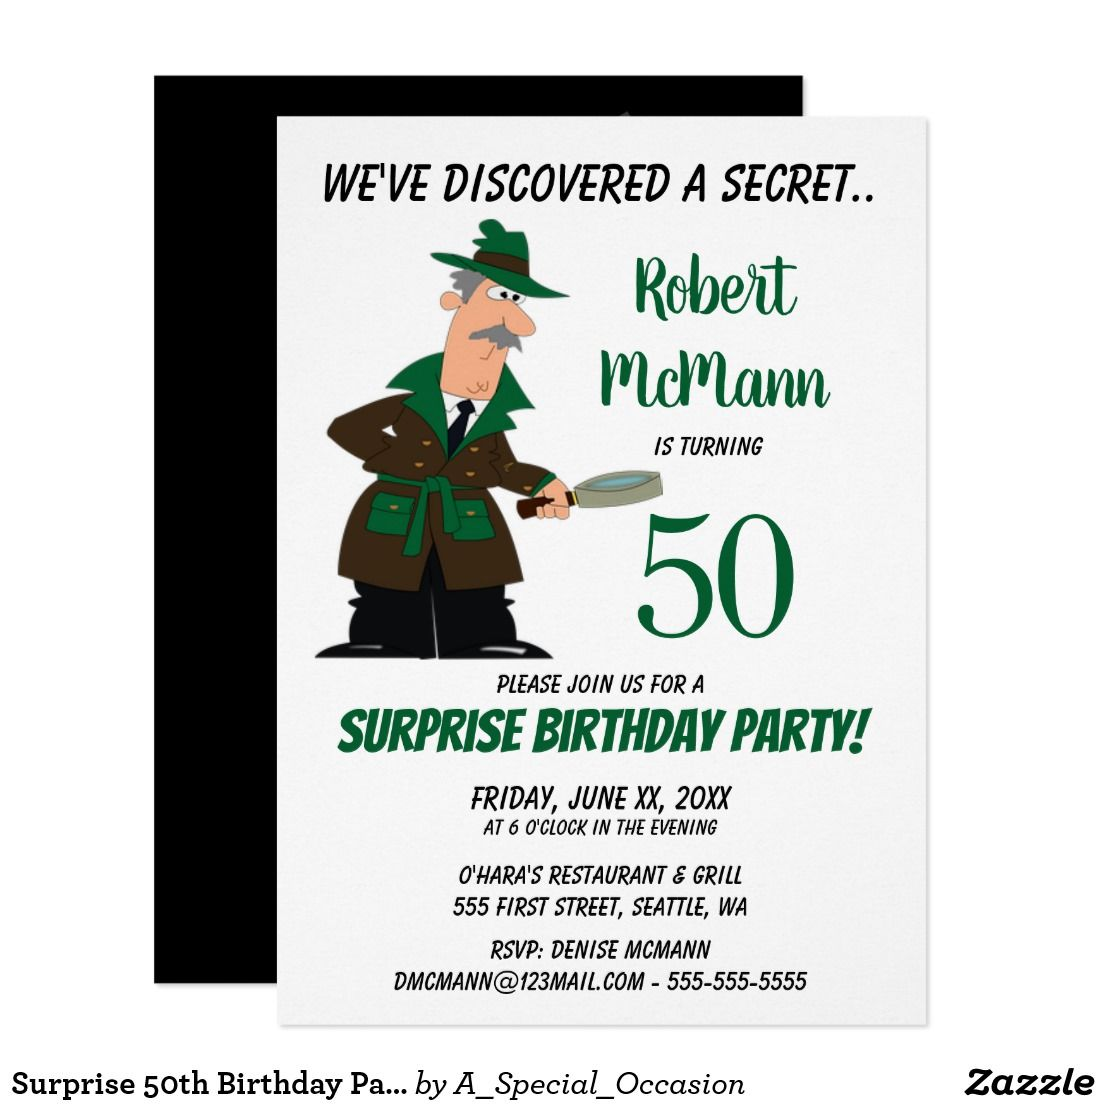 Surprise 50th Birthday Party Invitation - Secret | Adult Birthday ...